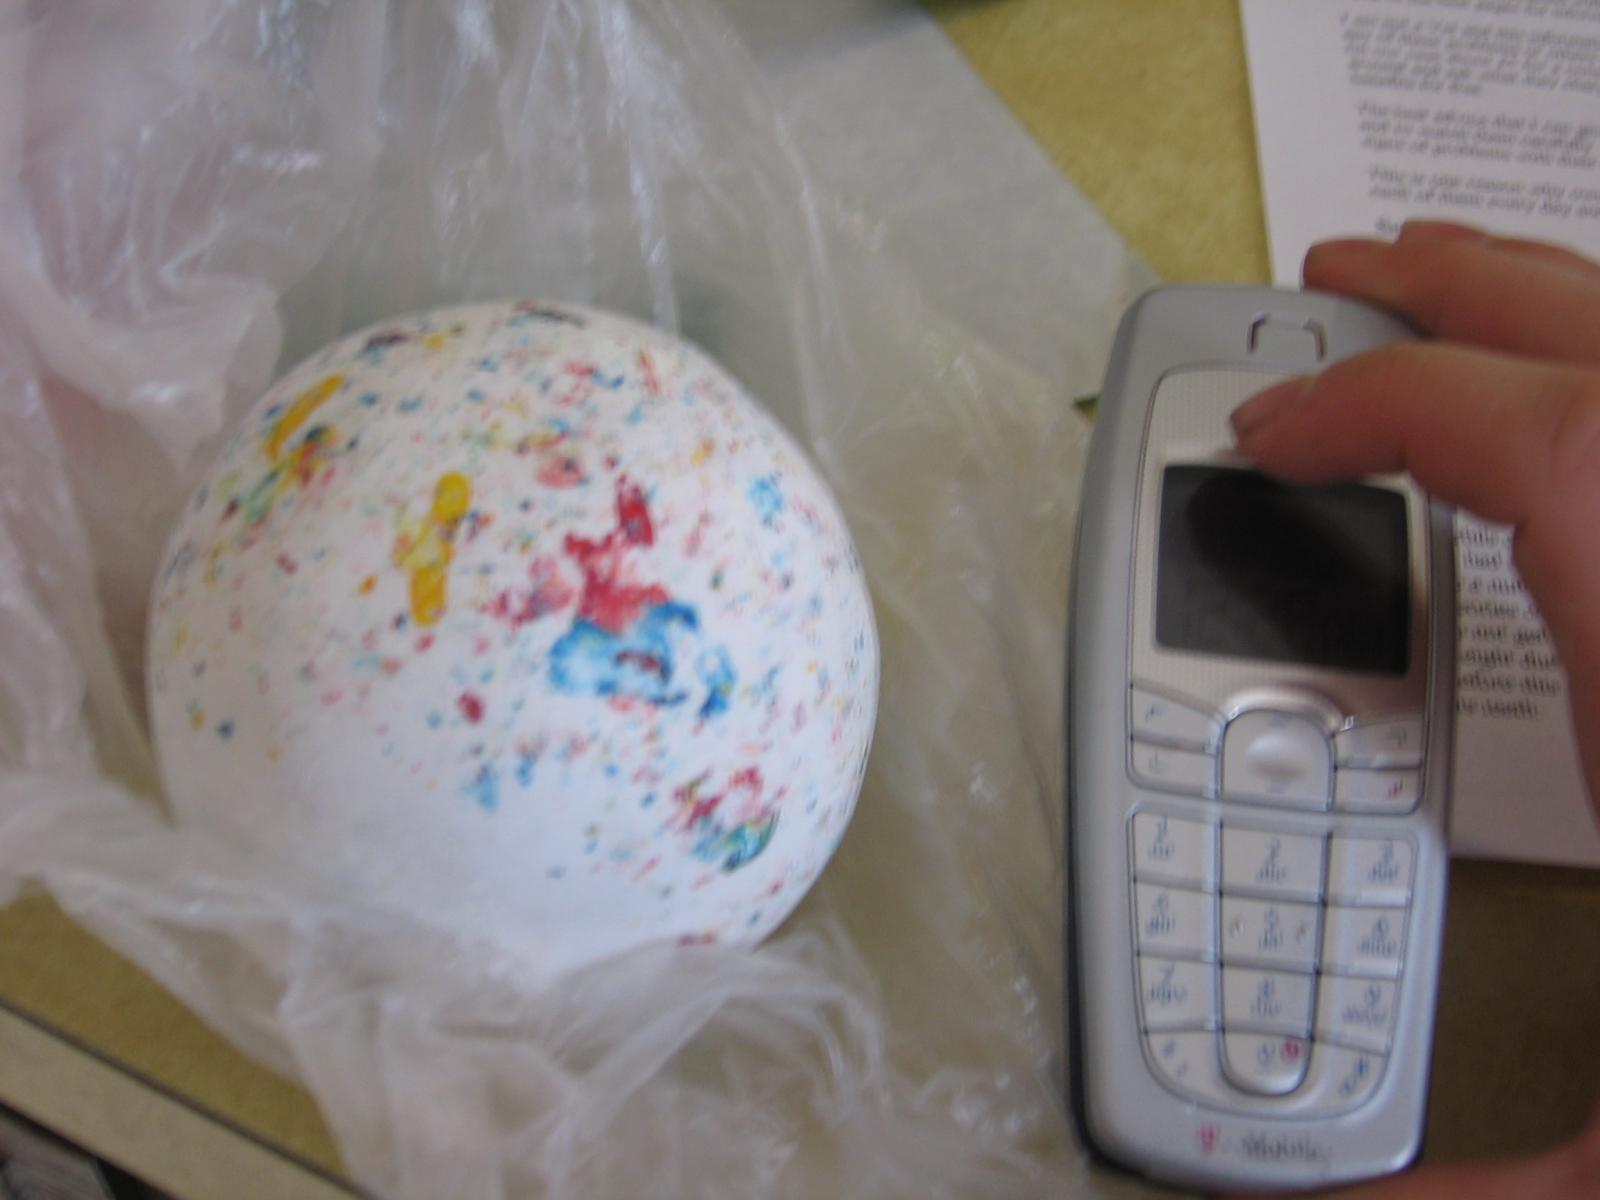 Heres a random picture of a huge jaw breaker I just got.